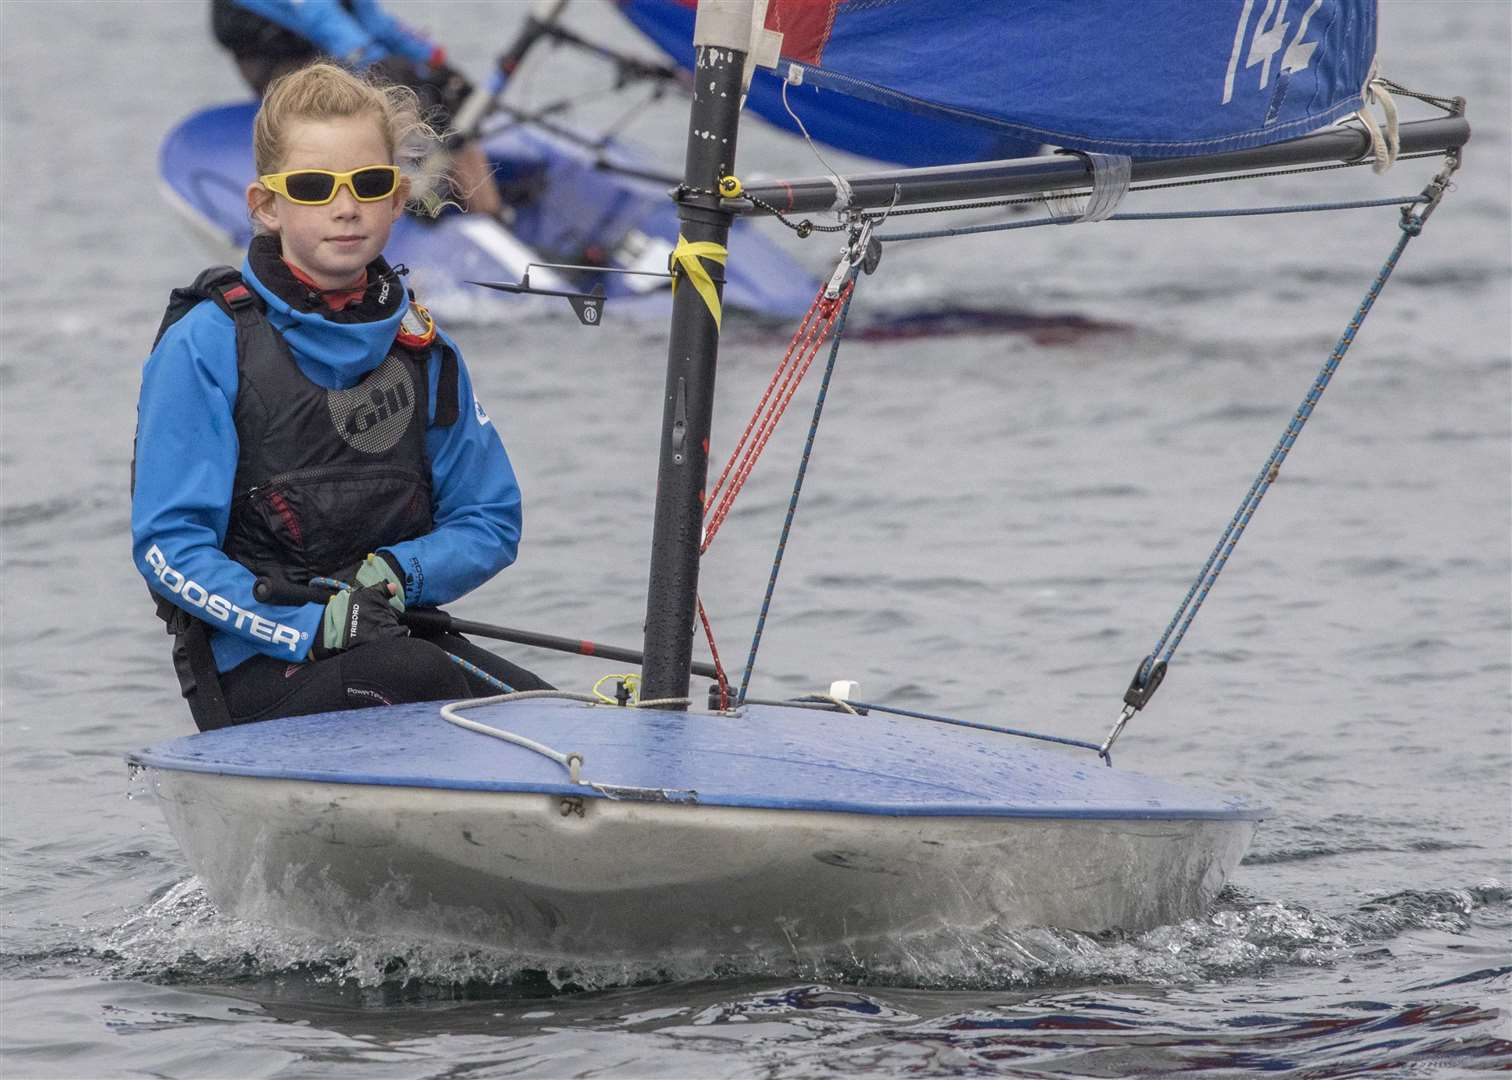 Isabel sailing a club Topper dinghy at Notts County SC, credit David Eberlin. (43455270)